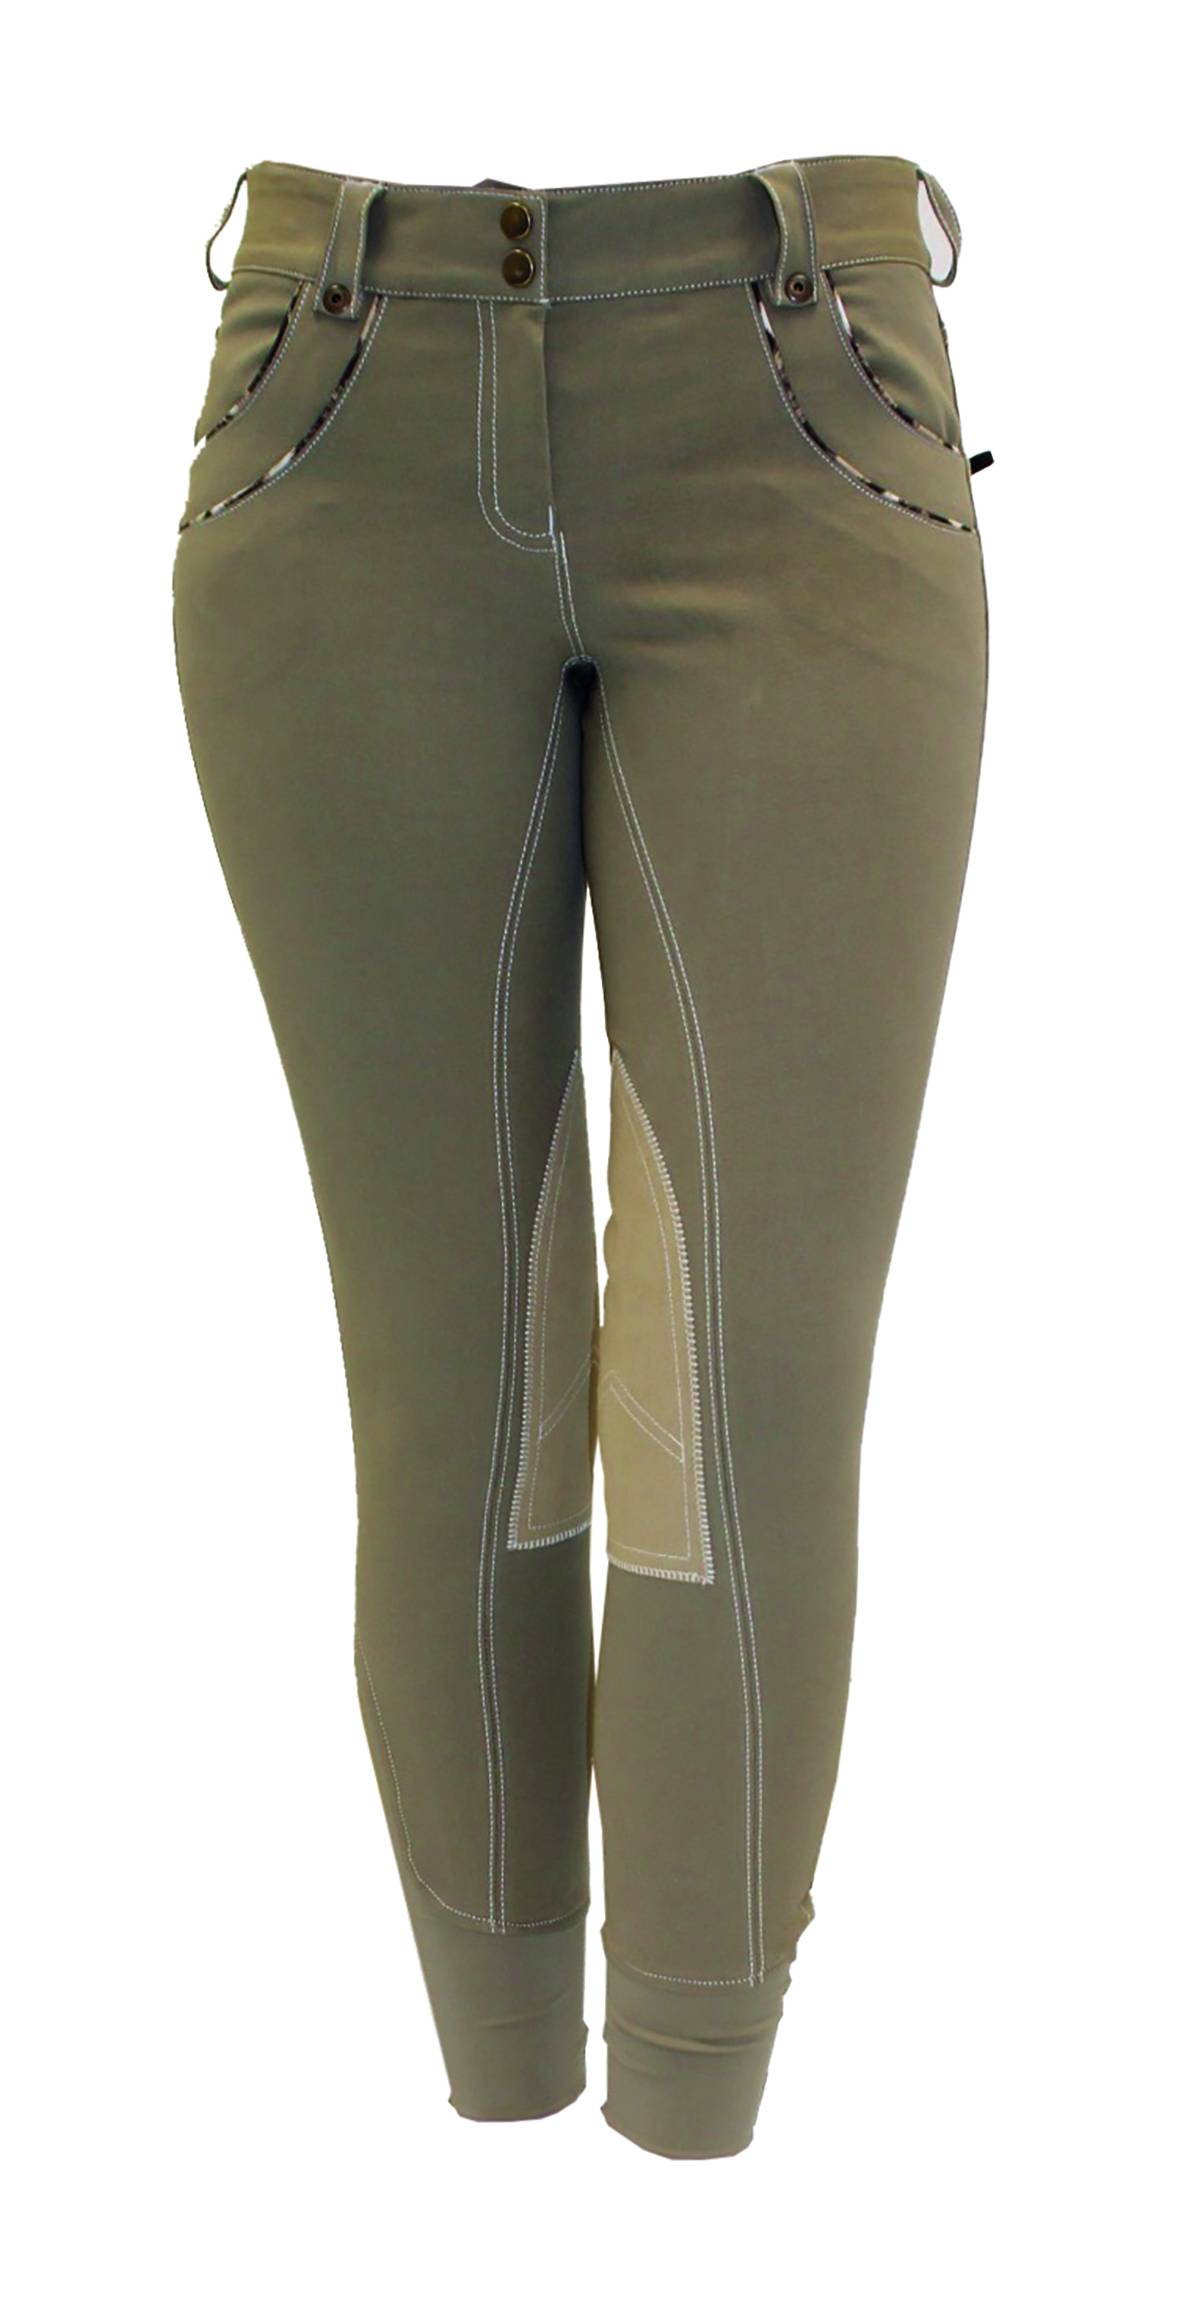 Horseware Polo Ladies' Nina Knee Patch Breeches